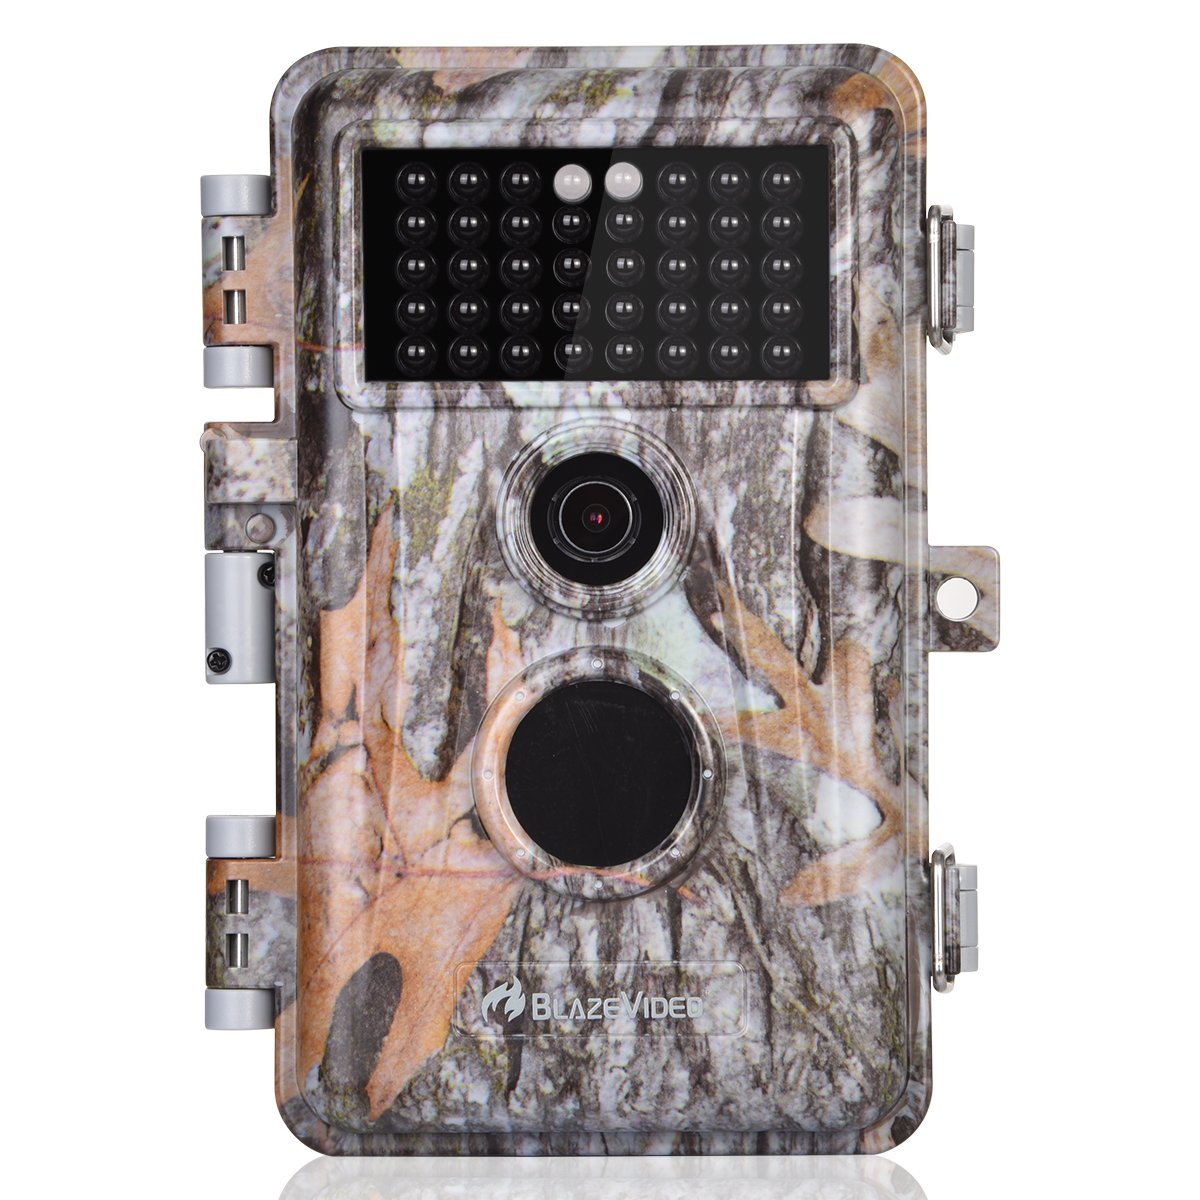 BlazeVideo 16MP Photo 1920x1080P Video Game & Trail Hunting Camera Wildlife Deer No Glow Infrared Scouting Cam PIR Motion Sensor Activated, IP66 Waterproof with Night Vision 65ft 38 IR LED, 2.4'' LCD